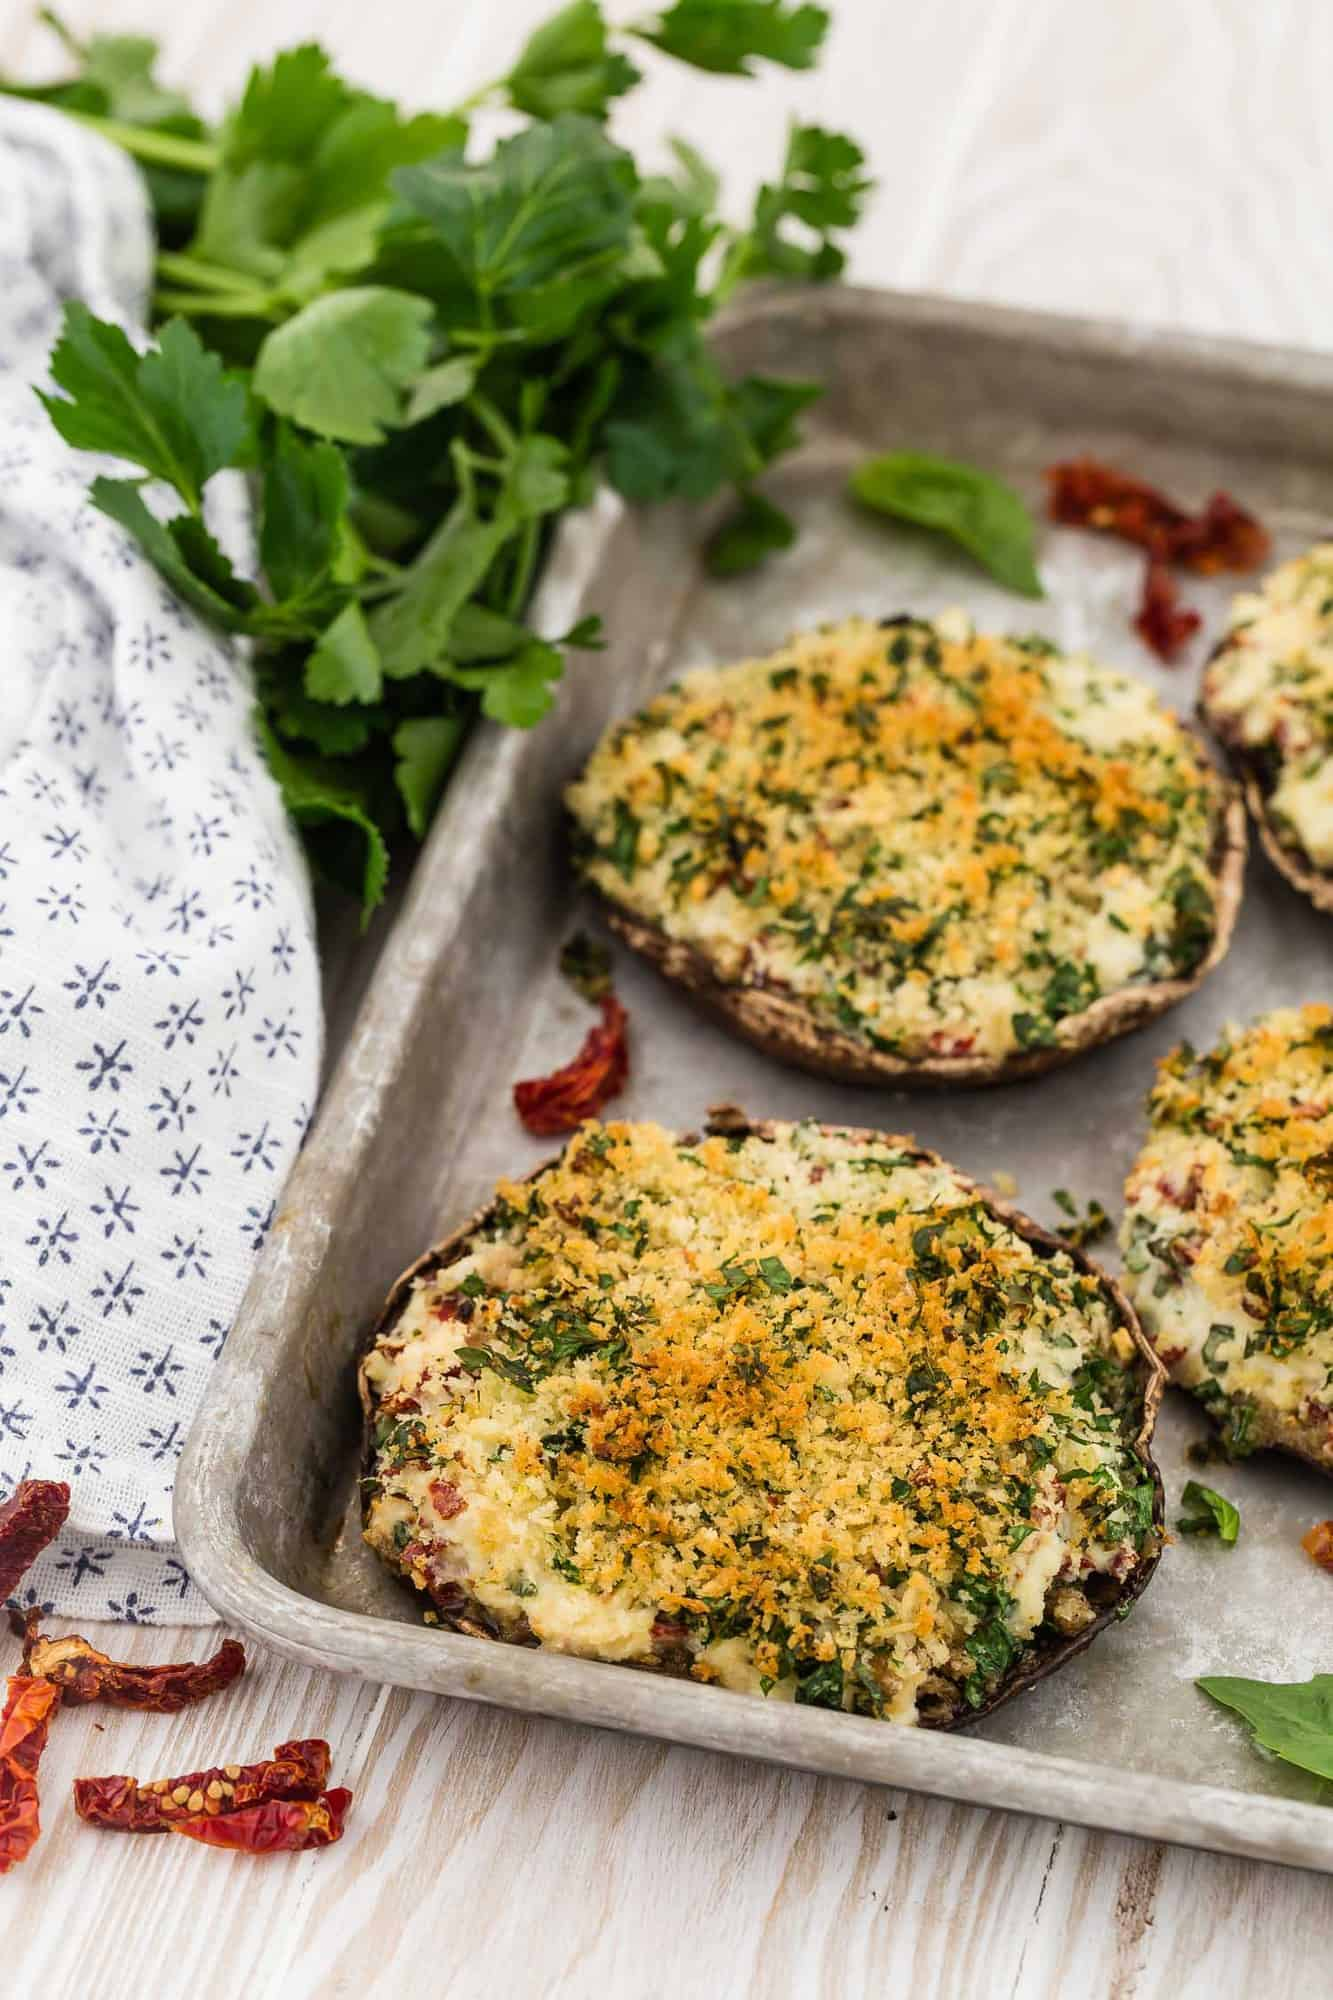 Stuffed mushrooms on a metal baking sheet, with parsley in background.